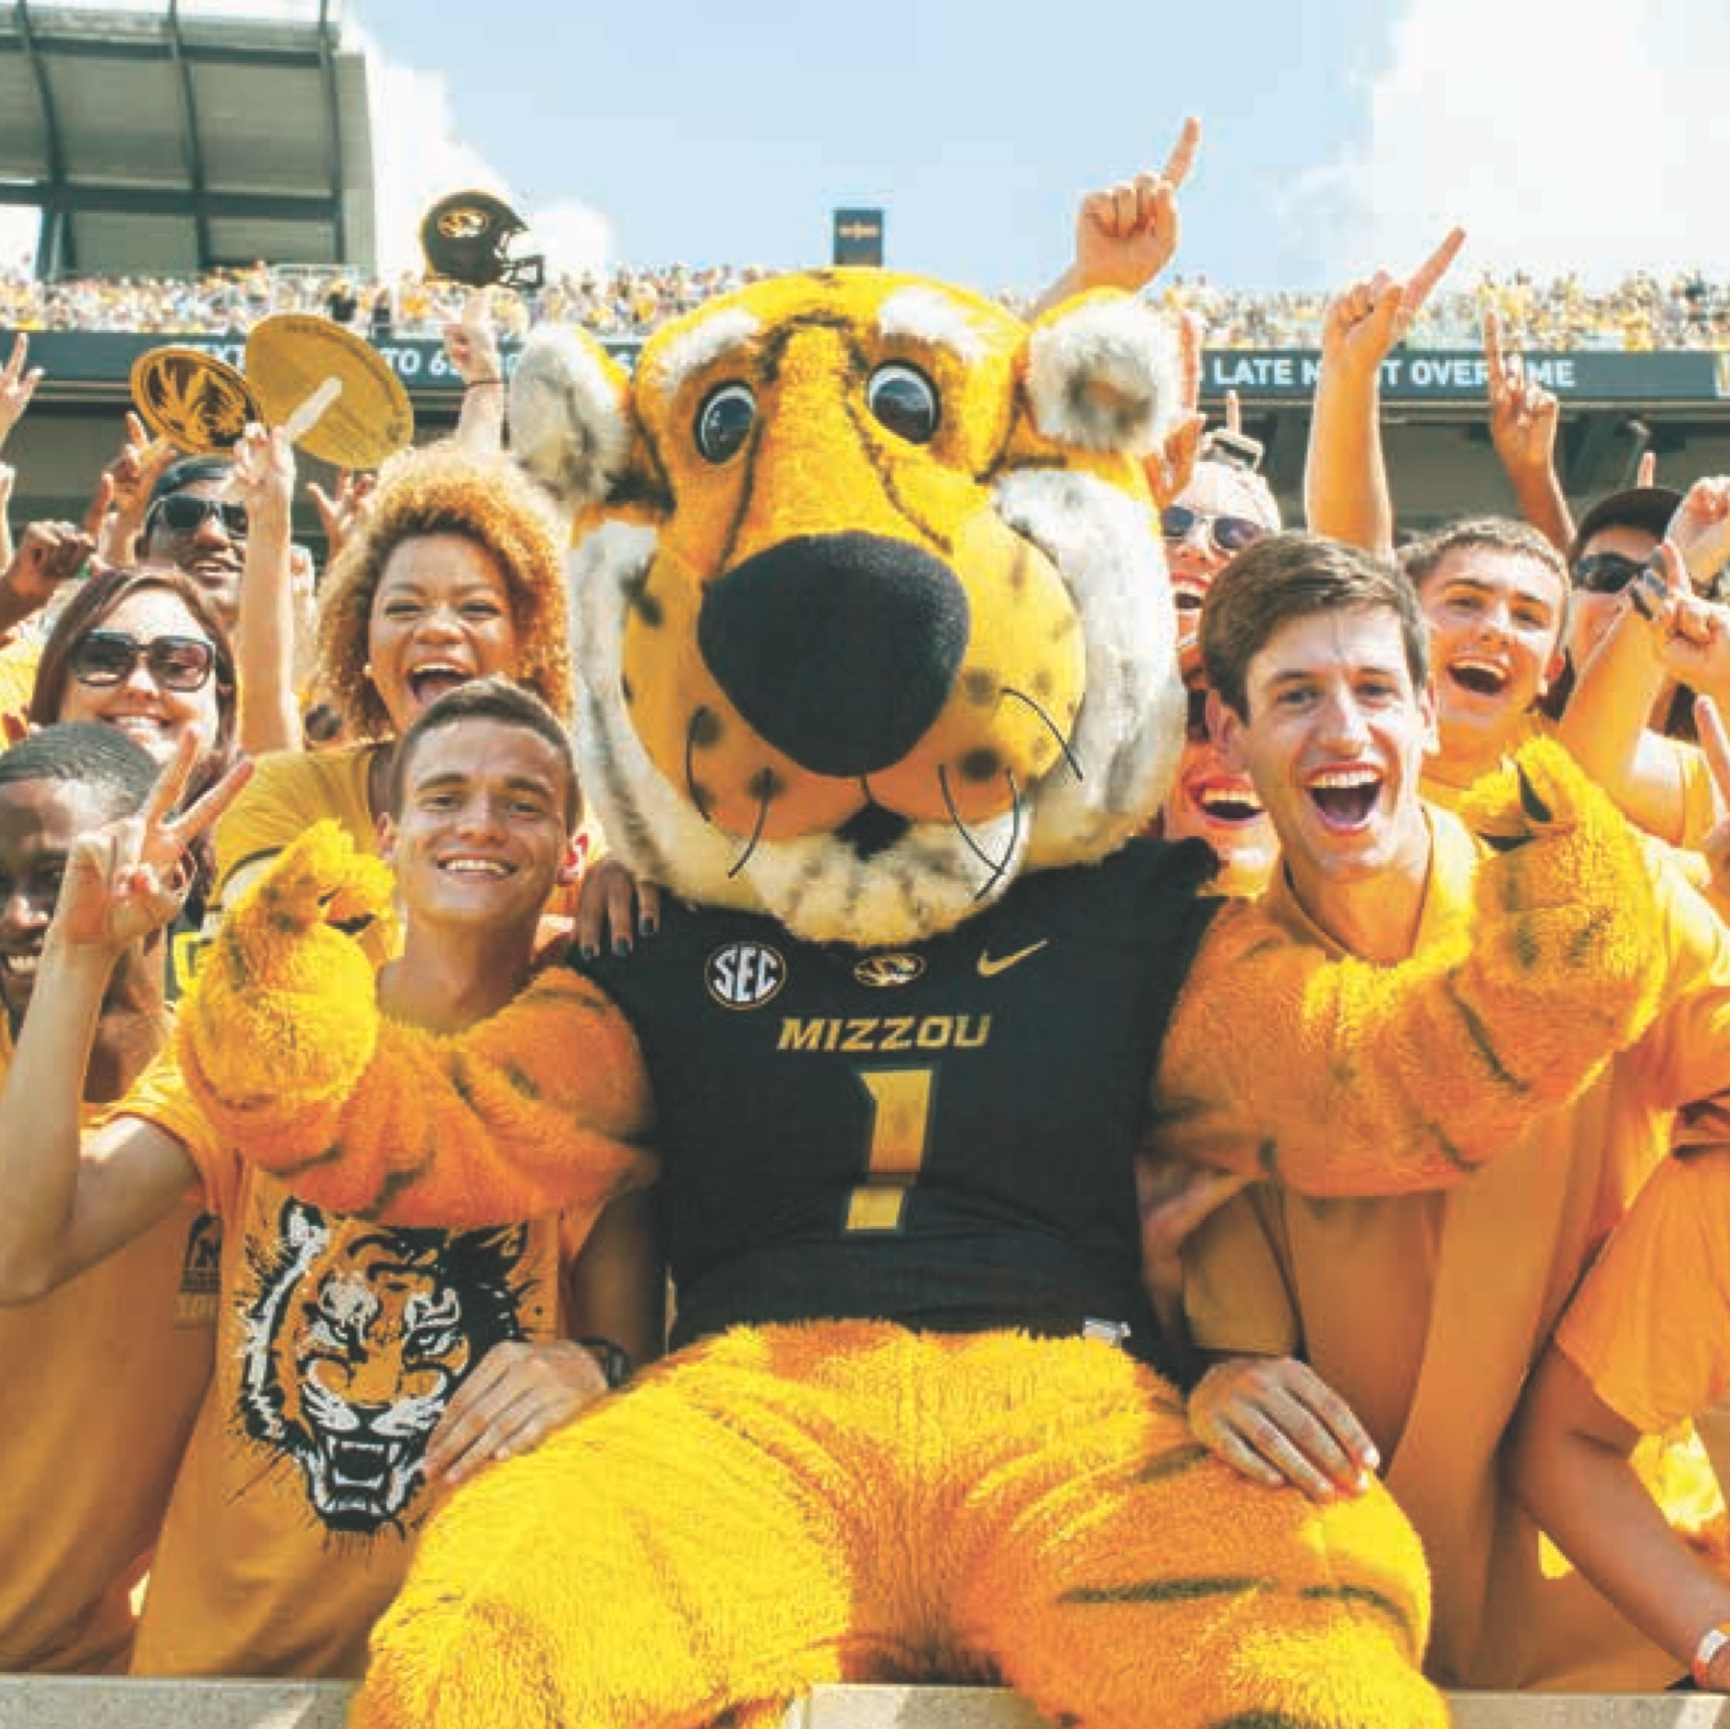 University of Missouri mascot with fans